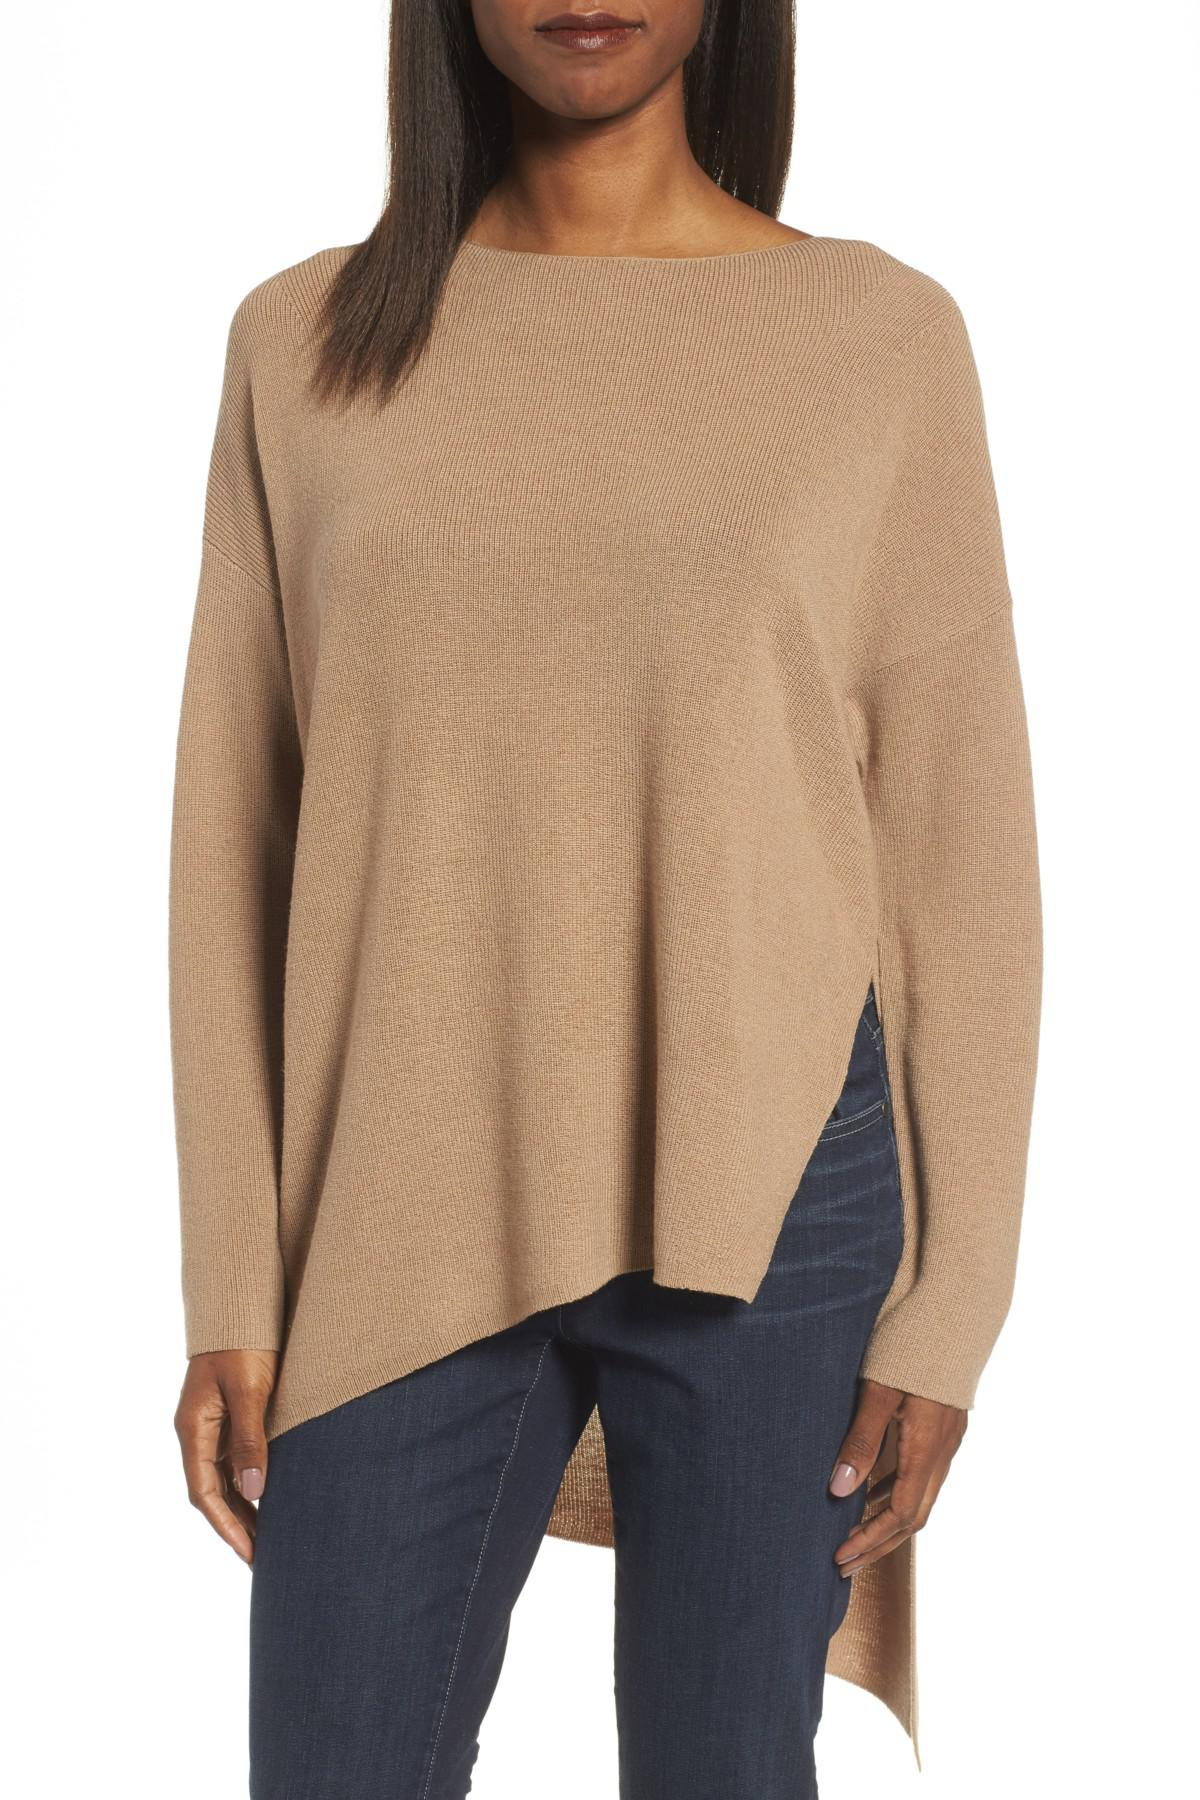 previously in eileen cotton size organic plus cardigan clothing linen gallery sold nordstrom lyst at white rack fisher